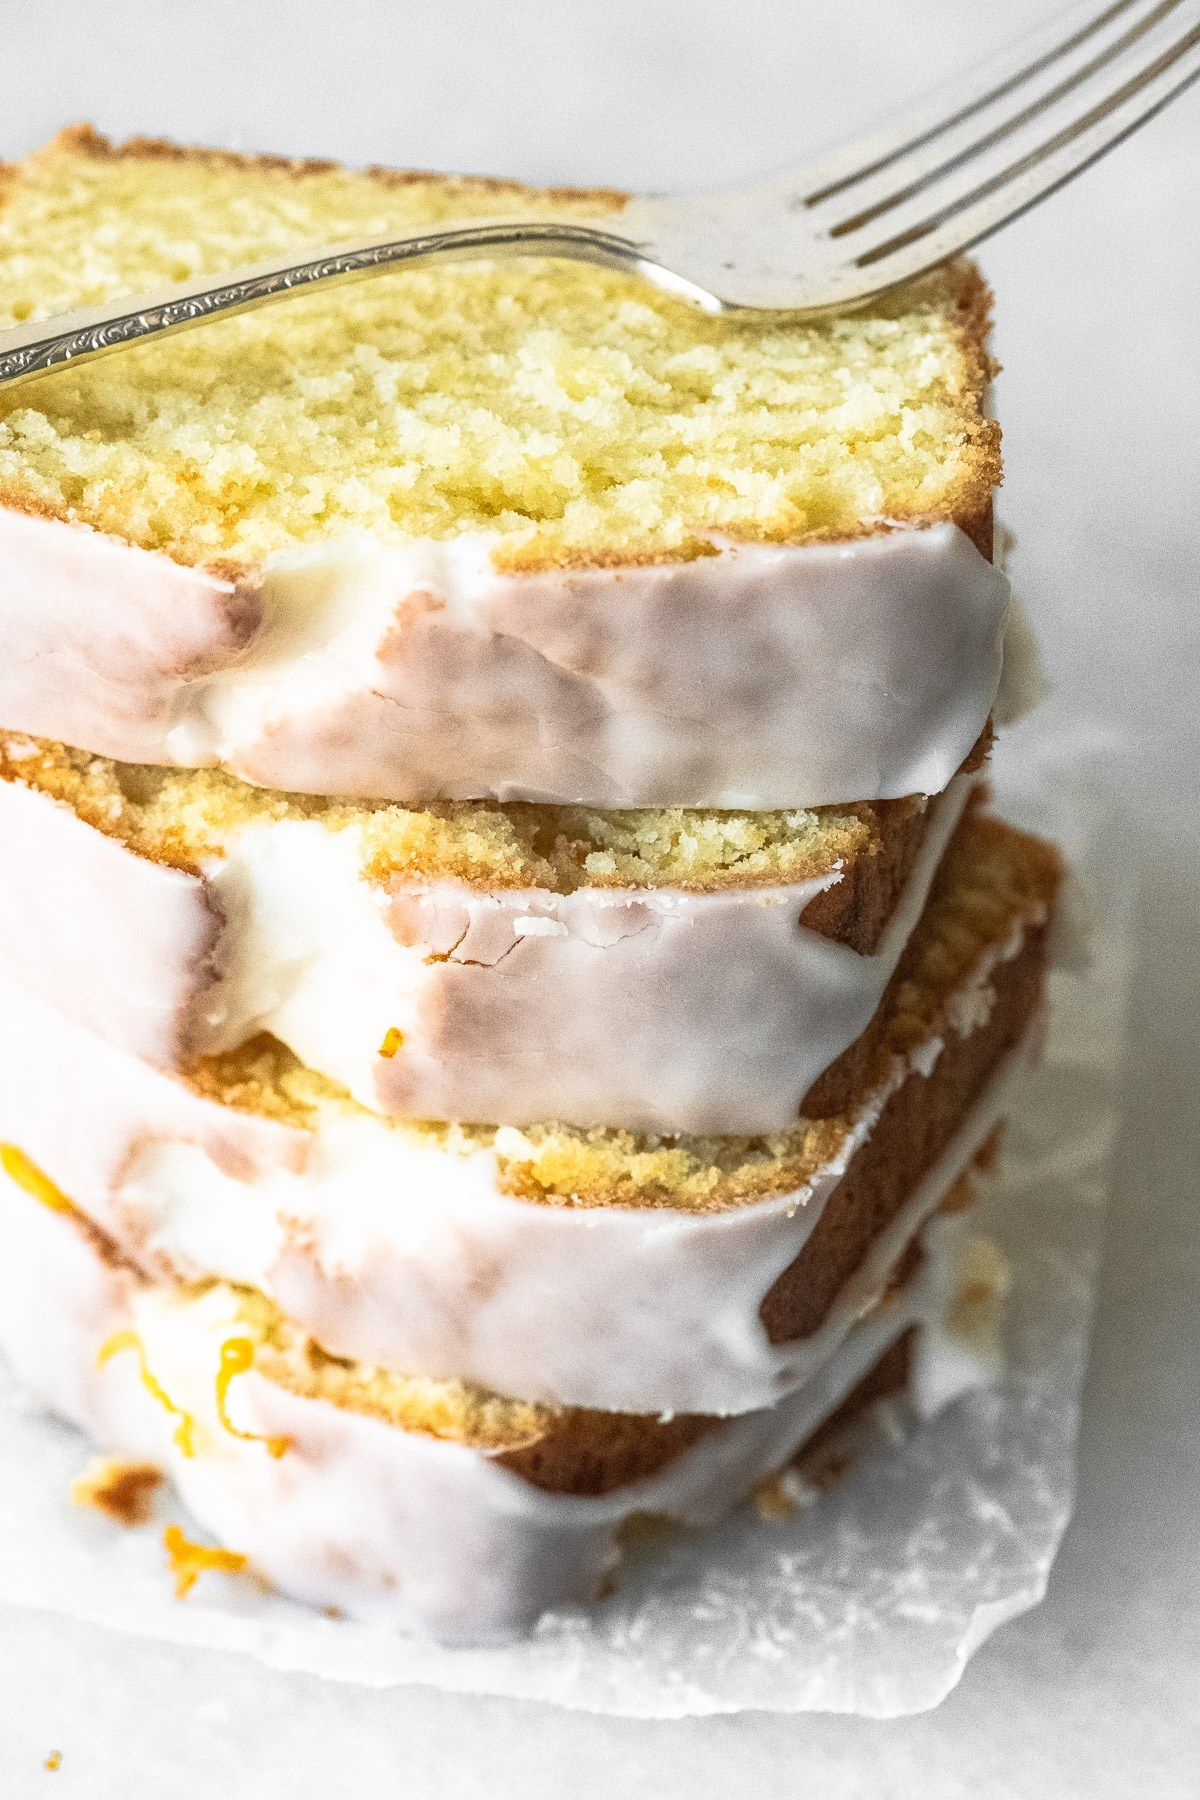 A Stack Of Buttermilk Lemon Bread Slices Buttermilk Recipes Lemon Bread Lemon Bread Recipes